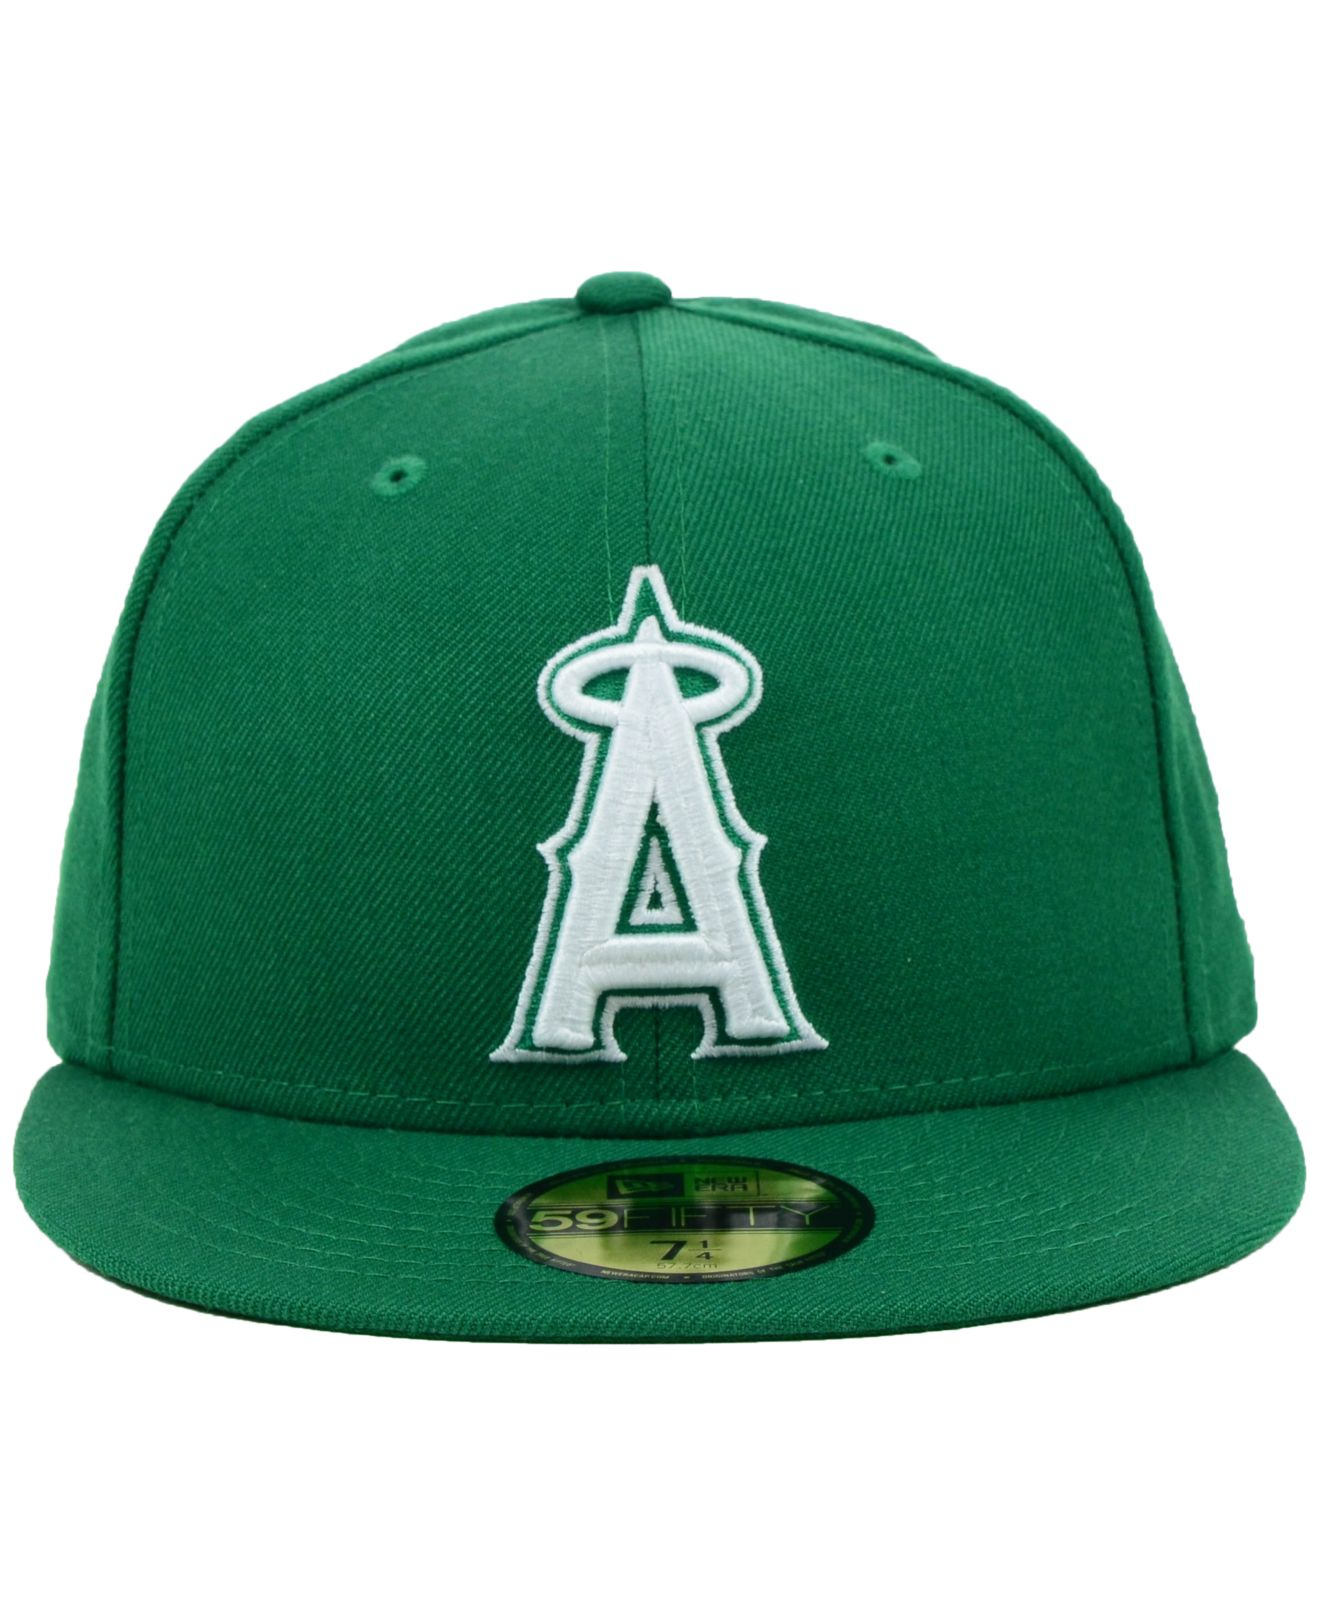 buy online 03a9a 39ea1 shop lyst ktz los angeles angels of anaheim mlb c dub 59fifty cap in 16181  c522e